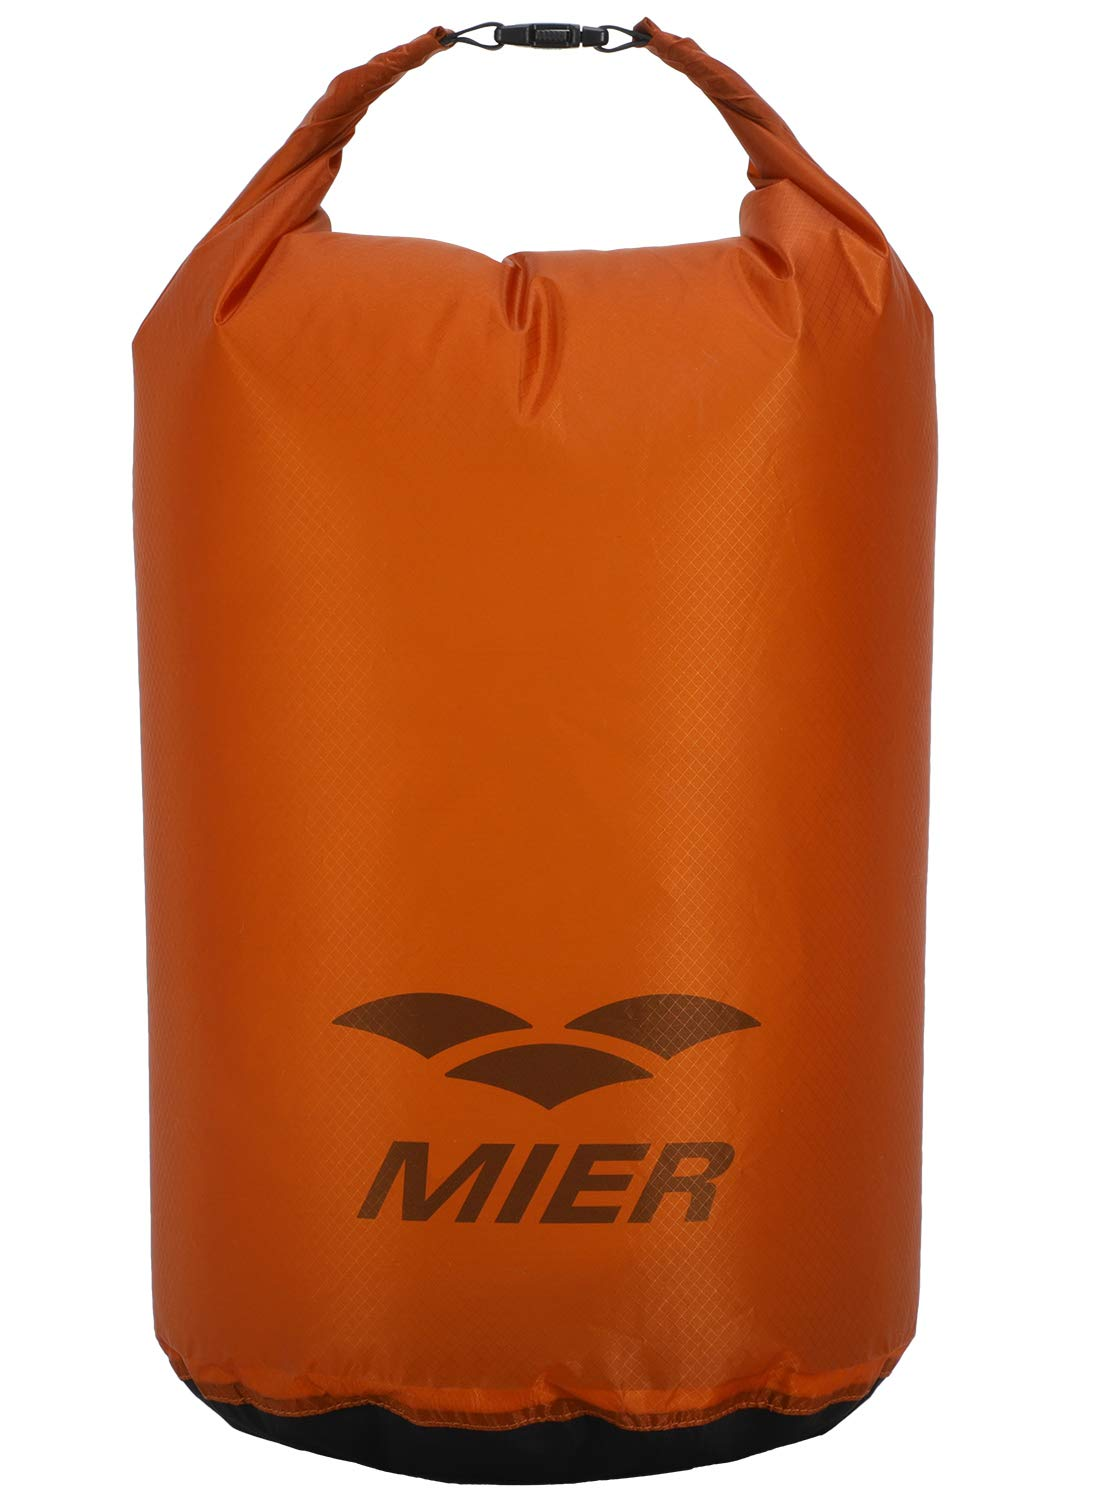 MIER Lightweight Dry Sack Floating Waterproof Nylon Dry Bag with Roll Top for Kayaking, Beach, Rafting, Boating, Swimming, Hiking, Camping and Fishing, 20L, Orange by MIER